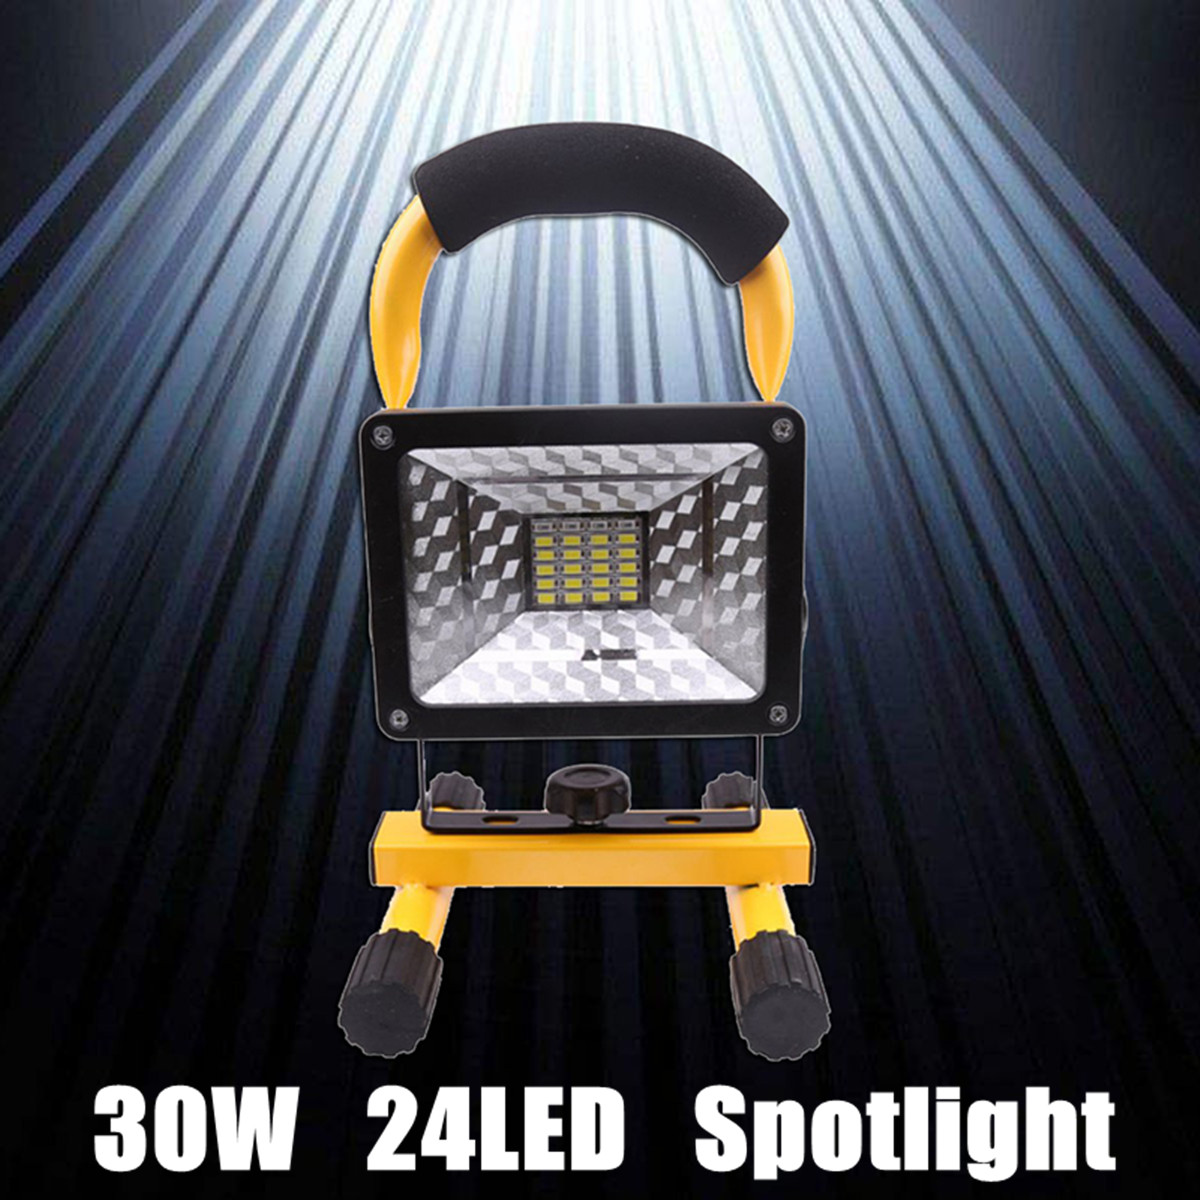 цена 1Set 24LED 2400LM Portable Rechargeable Work Light Floodlights US Plug Camping Outdoor Lawn Lamp LED Flood Light Universal